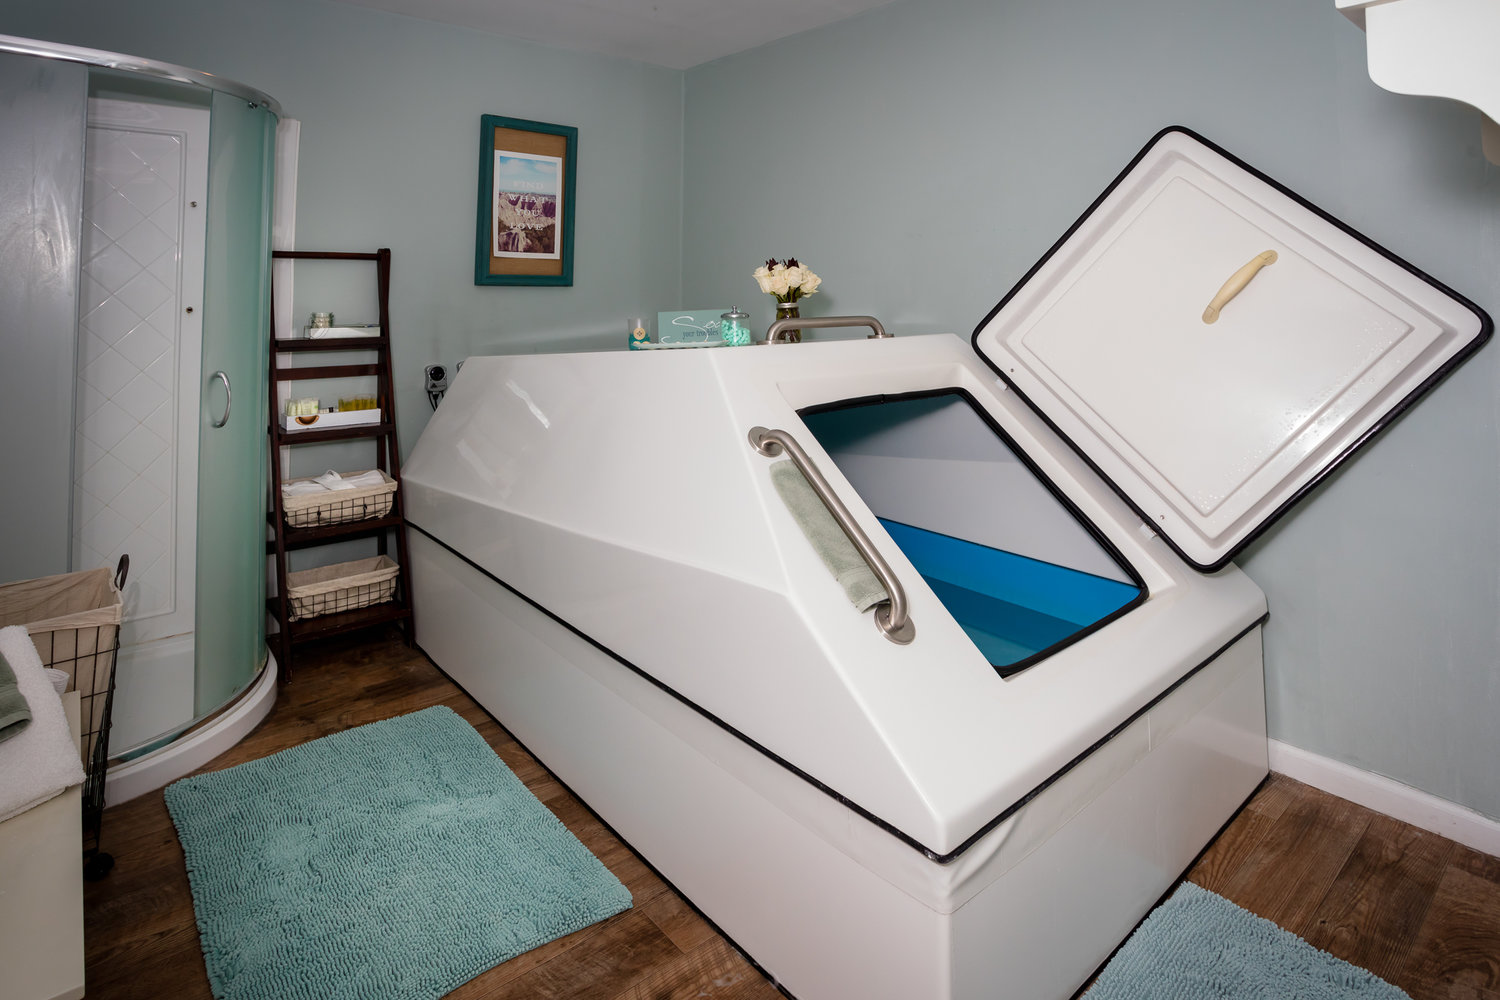 A Brief History of Floatation Therapy